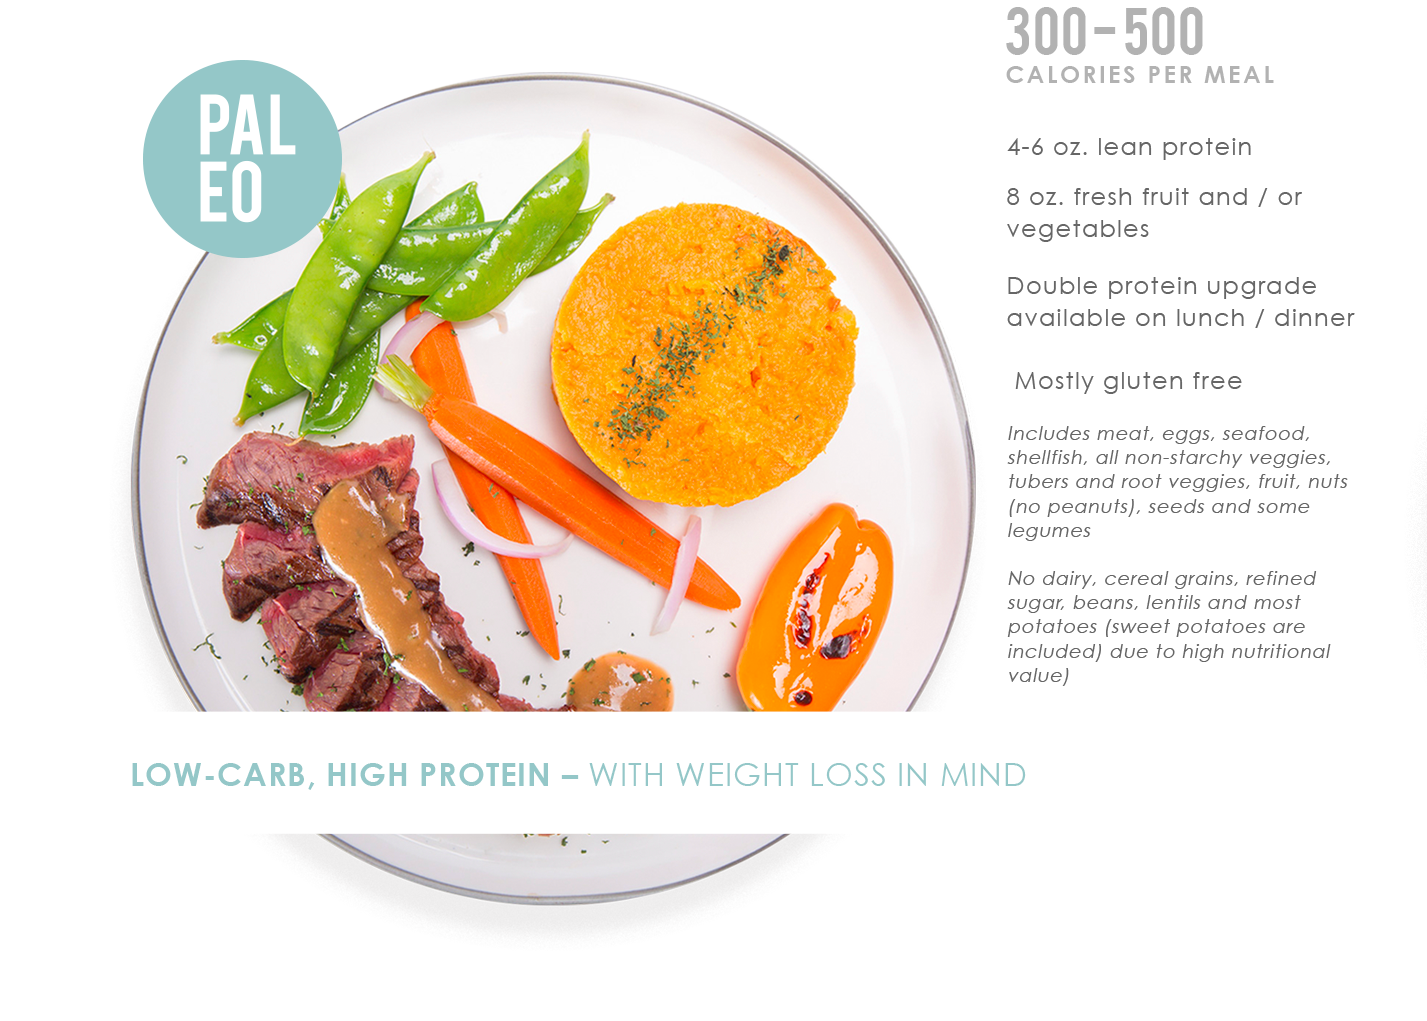 Royal Palm Beach paleo food delivery